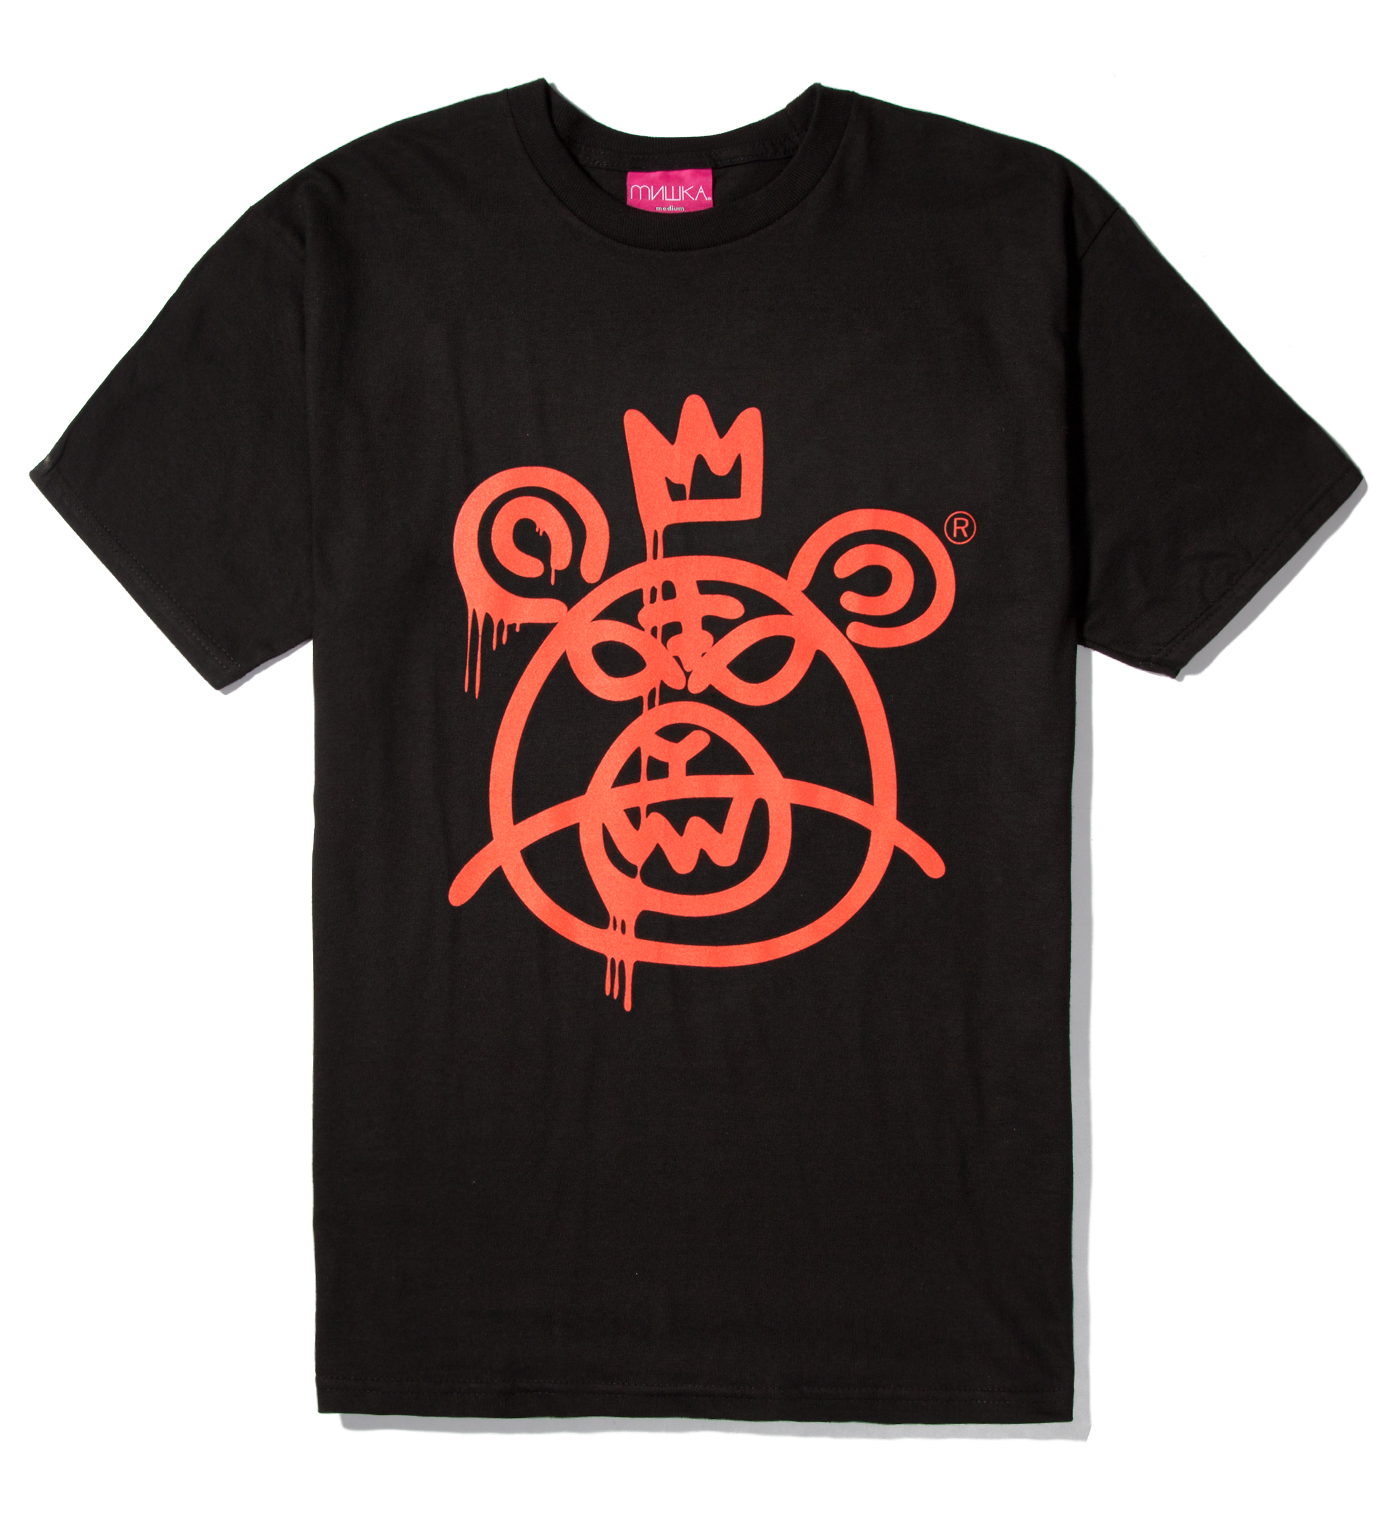 Mishka Black Bearmop T-Shirt